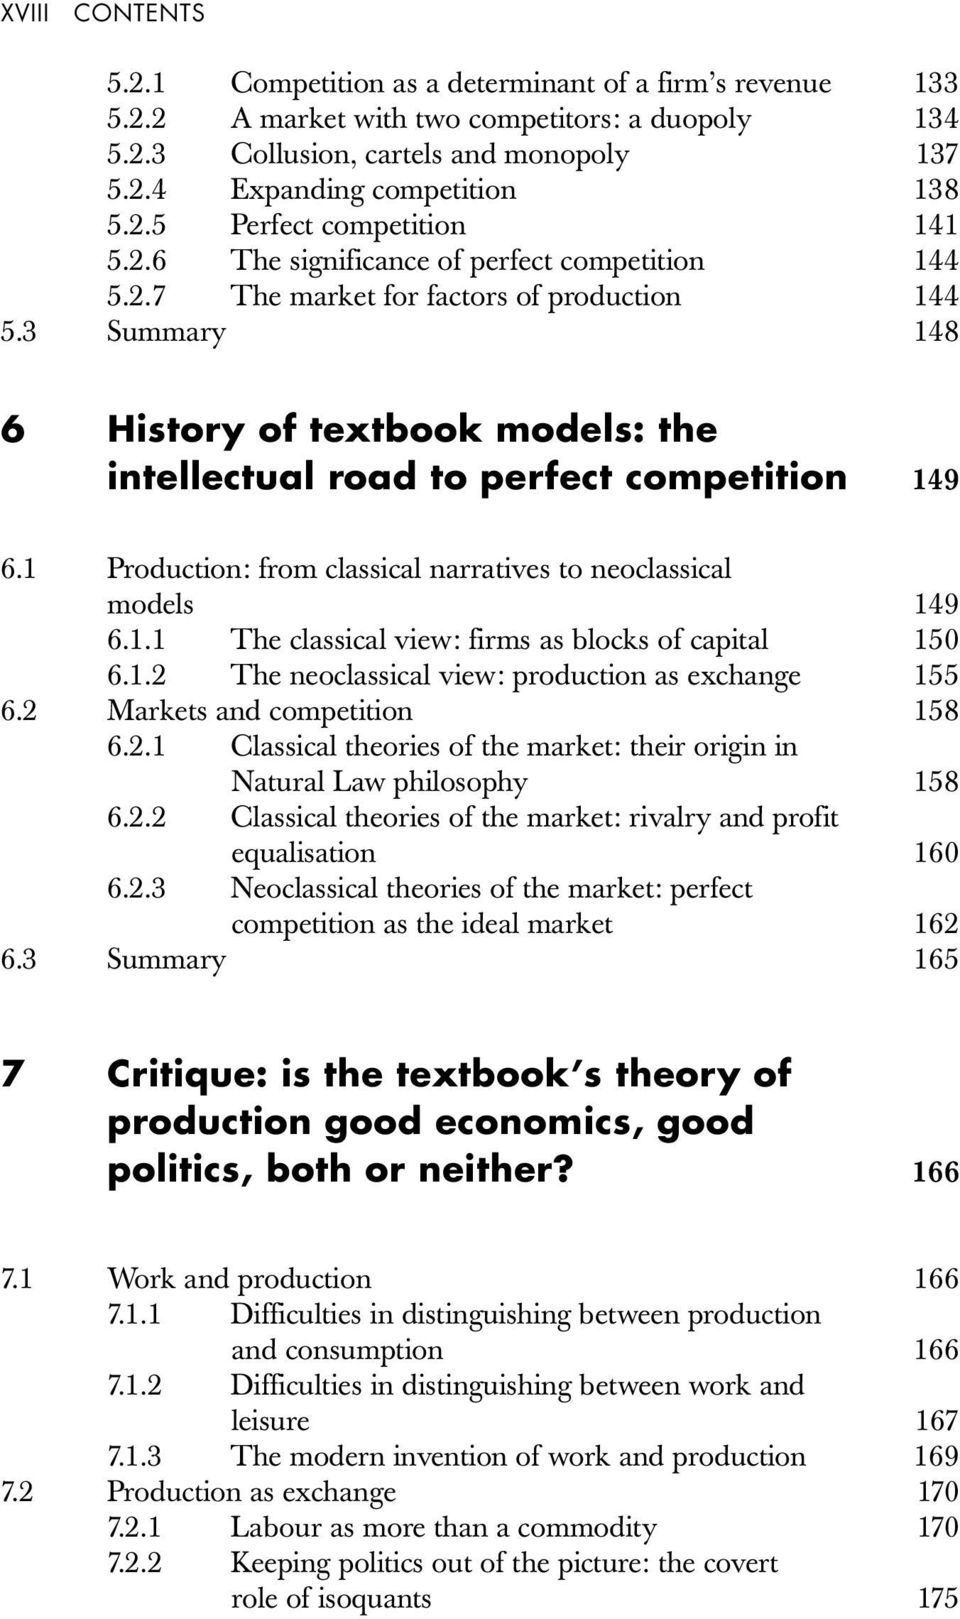 3 Summary 148 6 History of textbook models: the intellectual road to perfect competition 149 6.1 Production: from classical narratives to neoclassical models 149 6.1.1 The classical view: firms as blocks of capital 150 6.